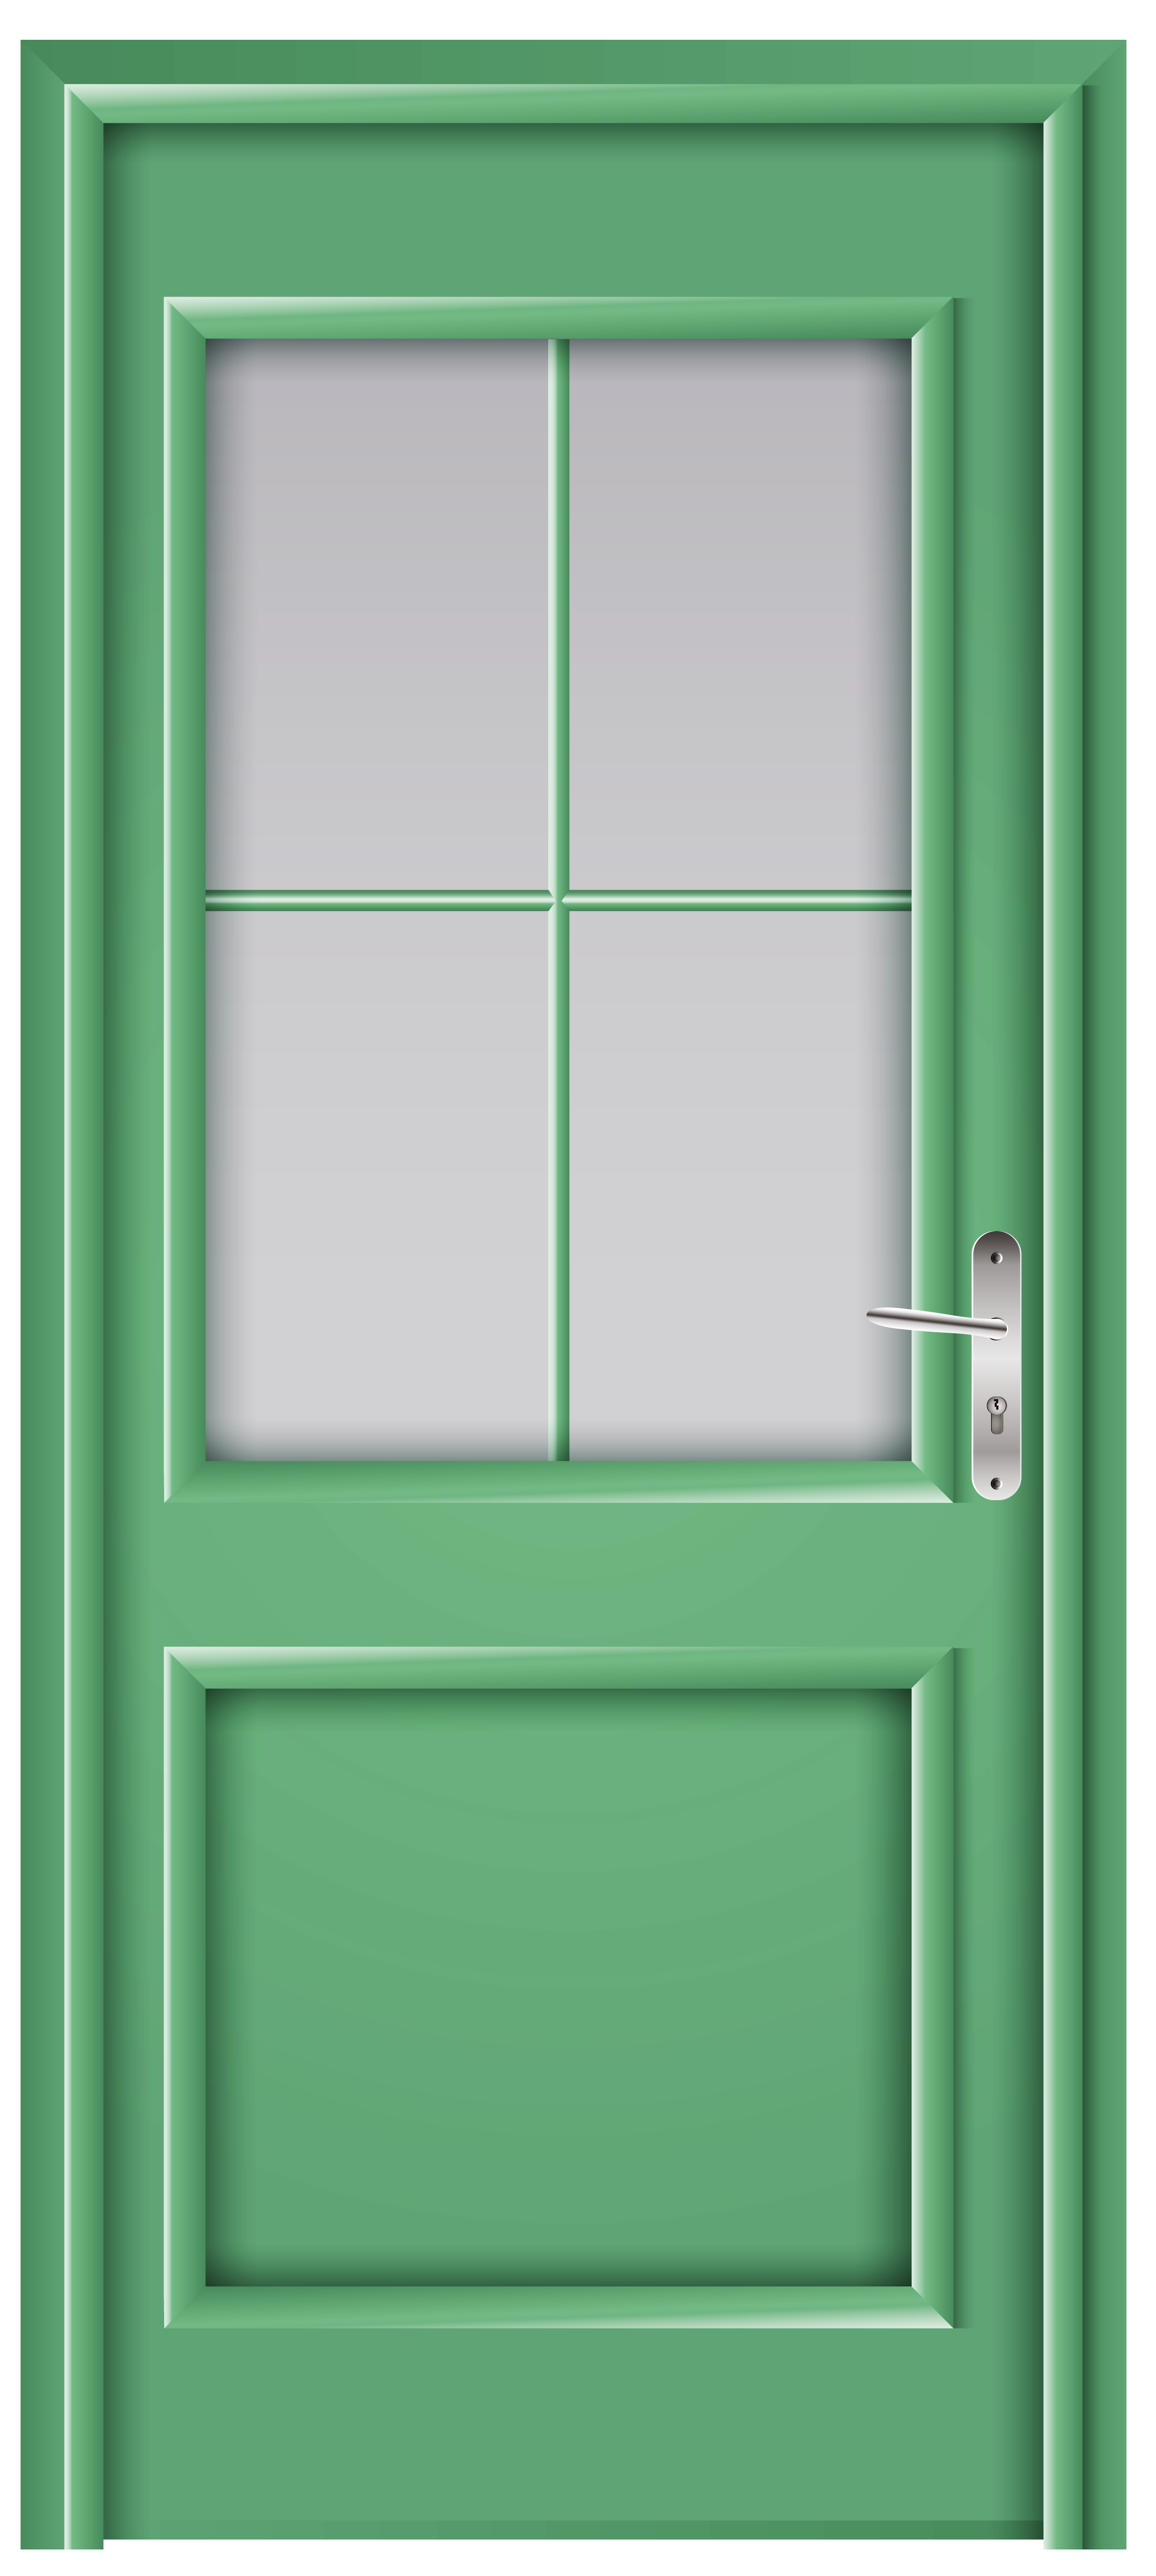 Clipart door rectangle.